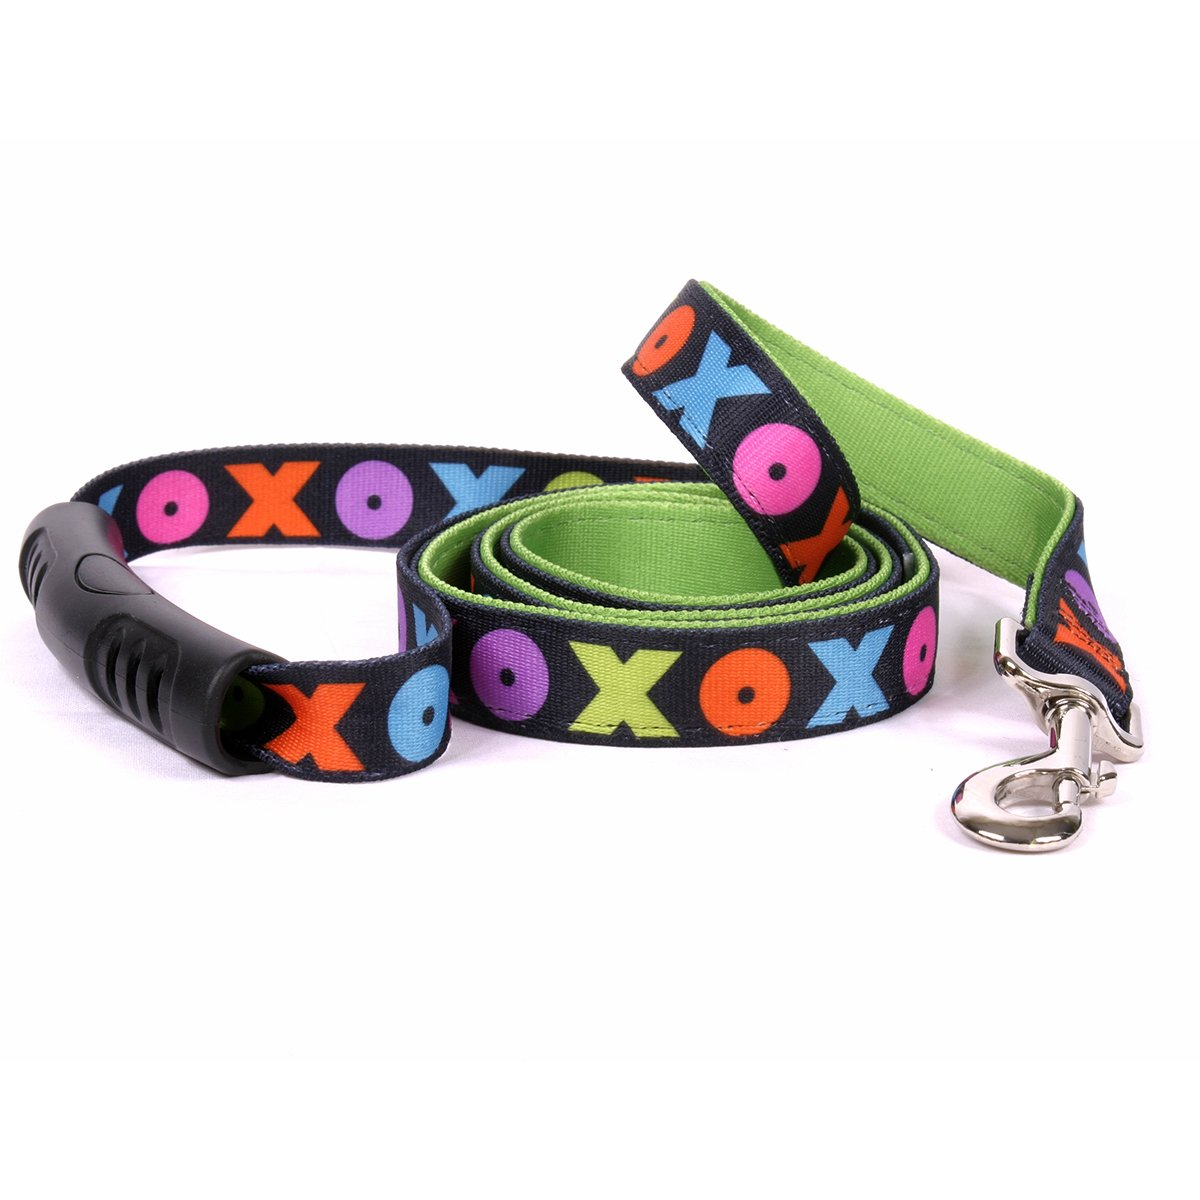 Yellow Dog Design Hugs and Kisses Uptown Dog Leash 3/4'' Wide and 5' (60'') Long, Small/Medium